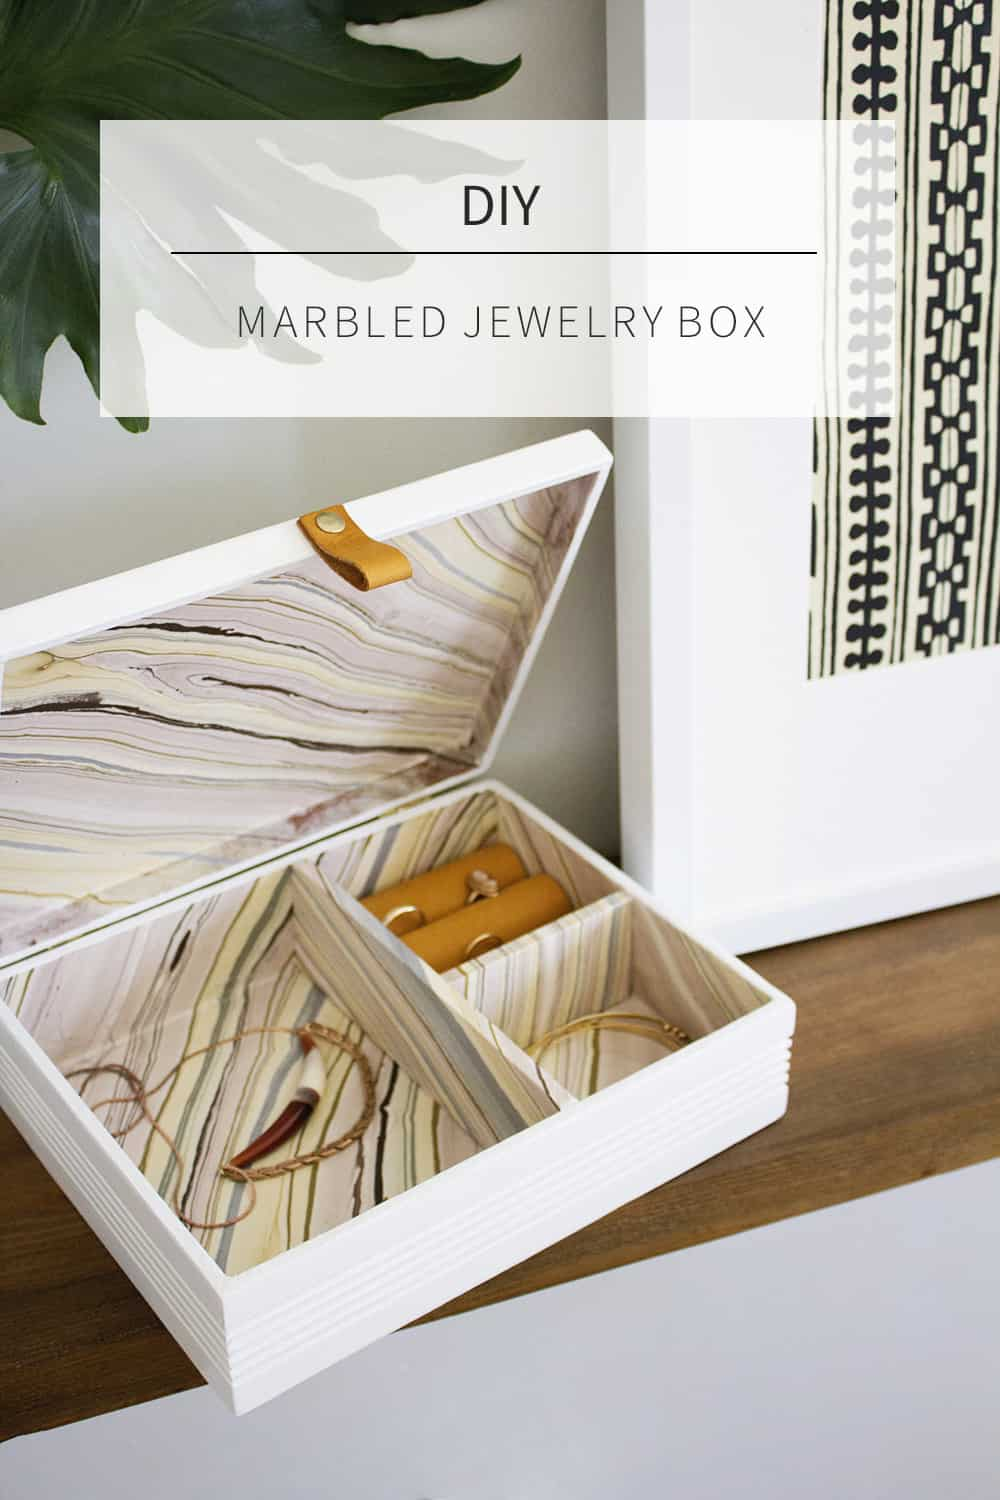 Marbled cigar box for jewelry